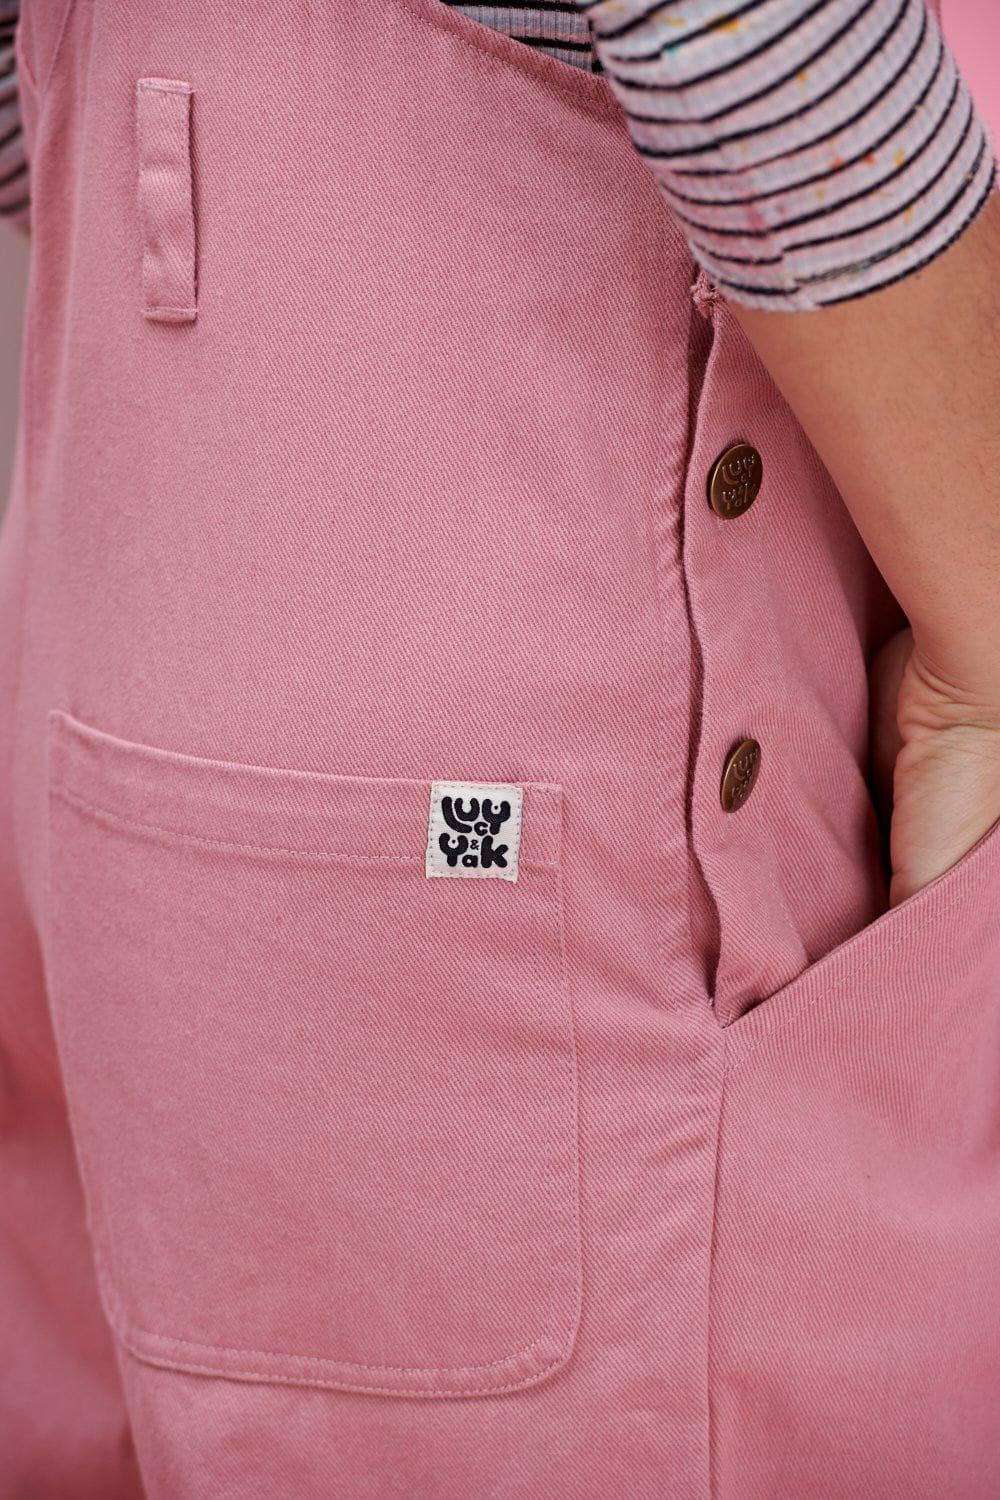 Lucy & Yak Dungarees 'Easton' Organic Heavy Cotton Twill Baggy Dungarees in Blush Pink